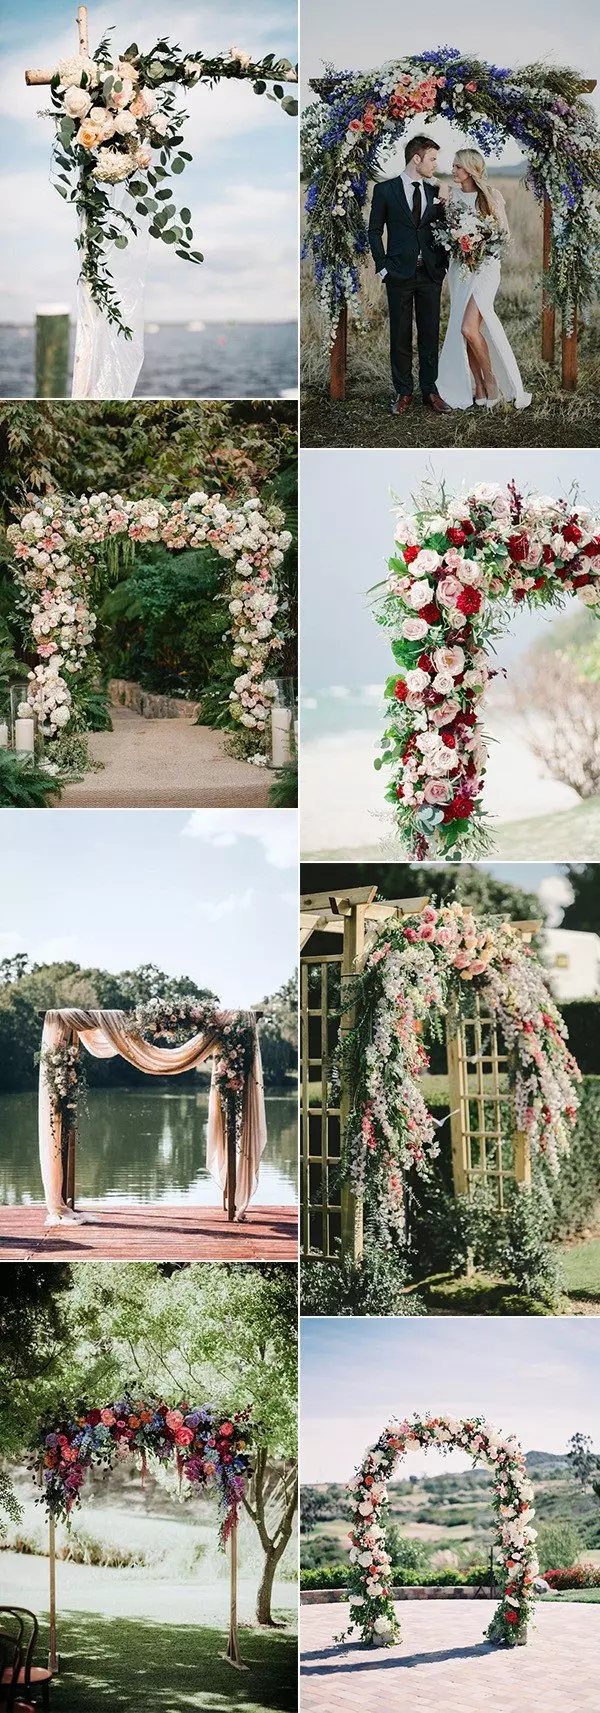 20 Prettiest Floral Wedding Arch Decoration Ideas – Page 2 of 2